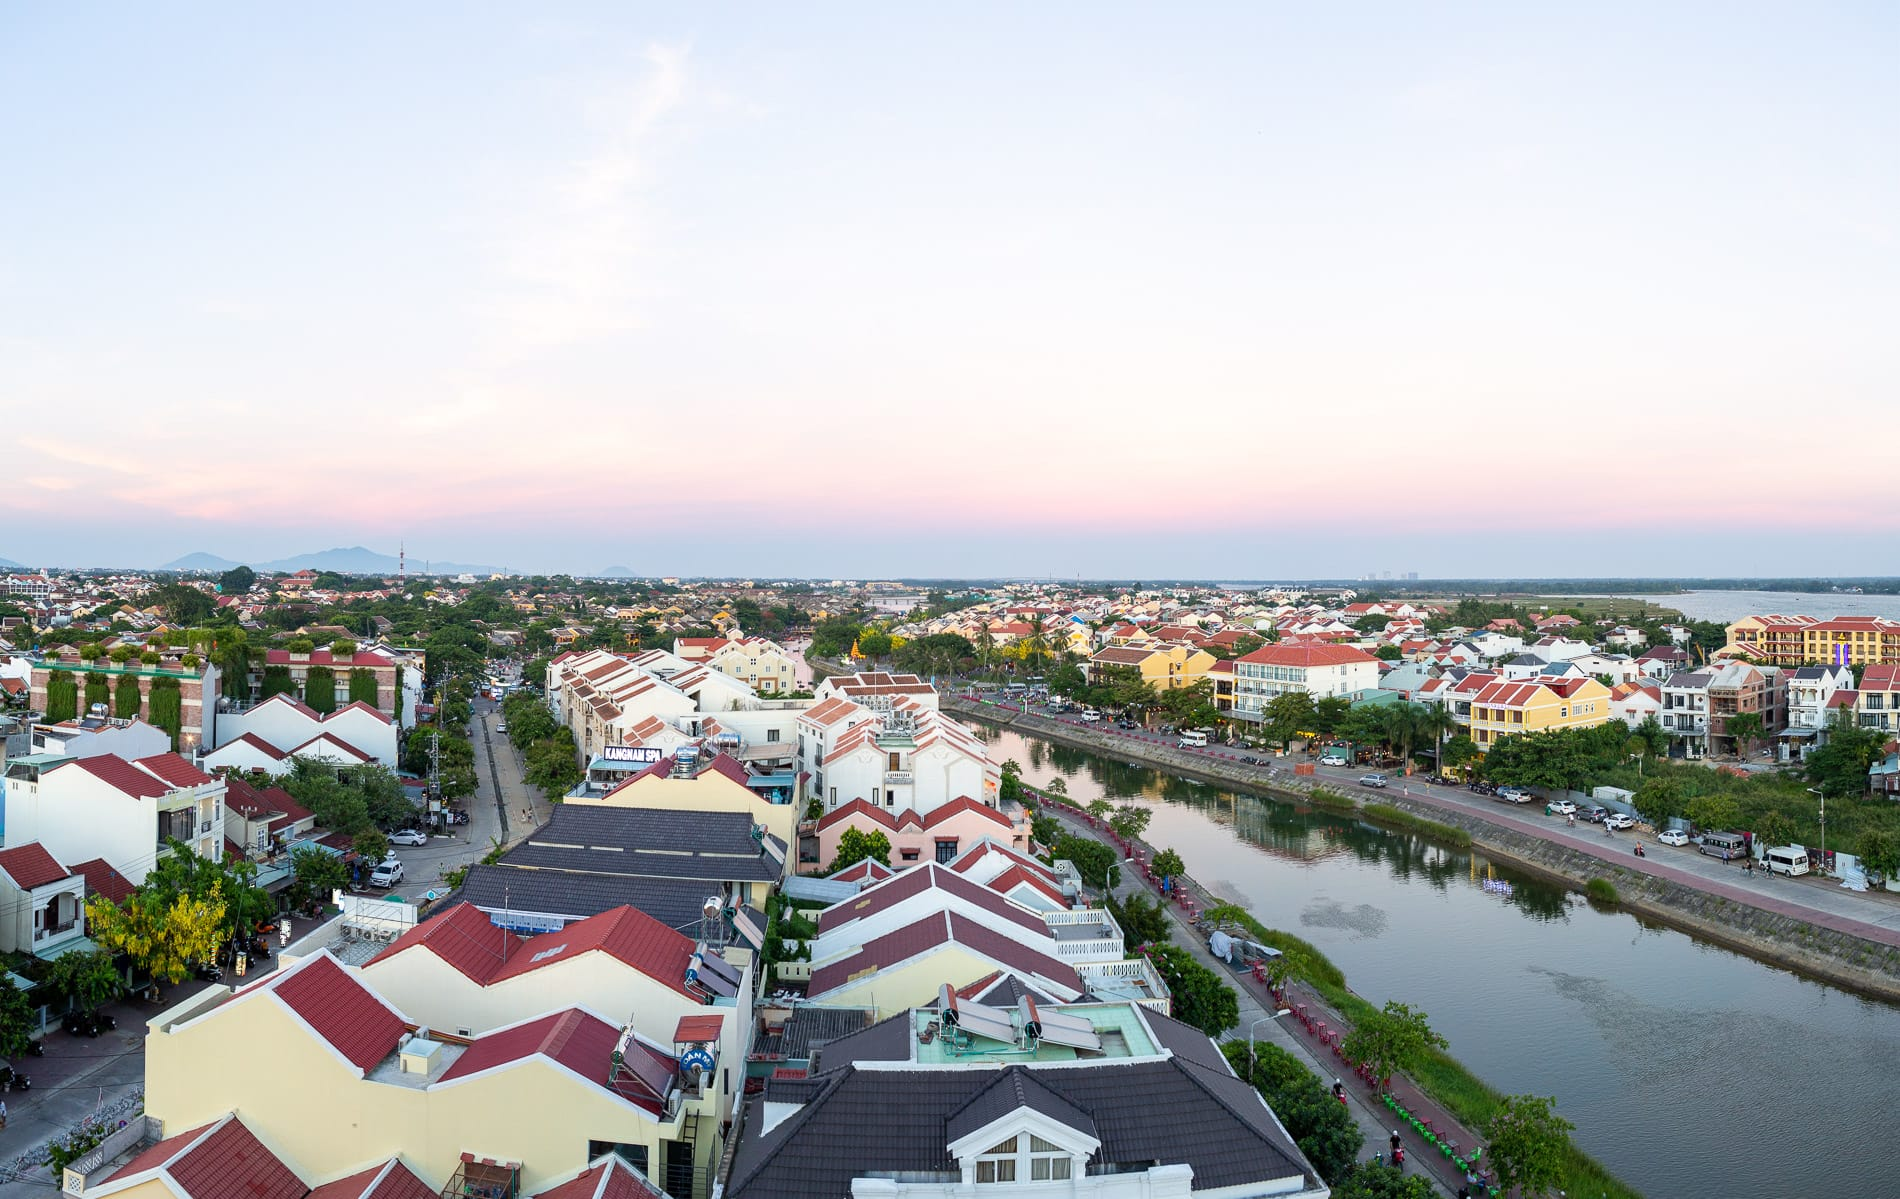 Rooftop view of Hoi An